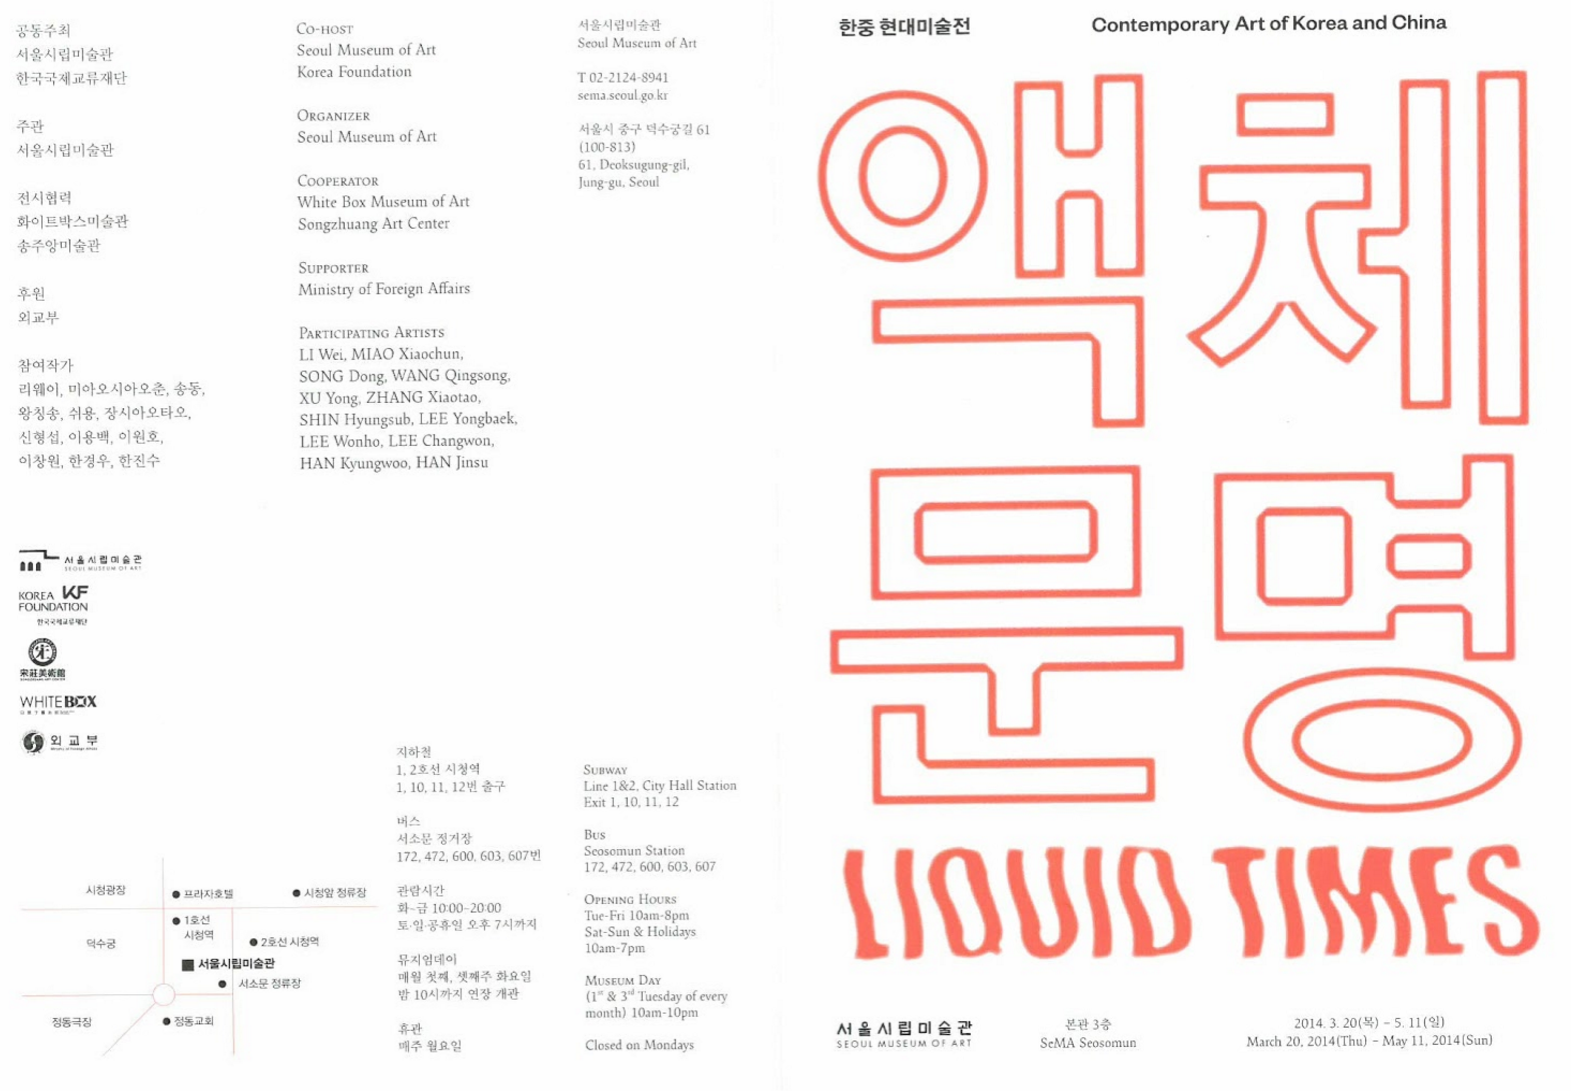 Exhibition brochure, Seoul Museum of Art, 2014